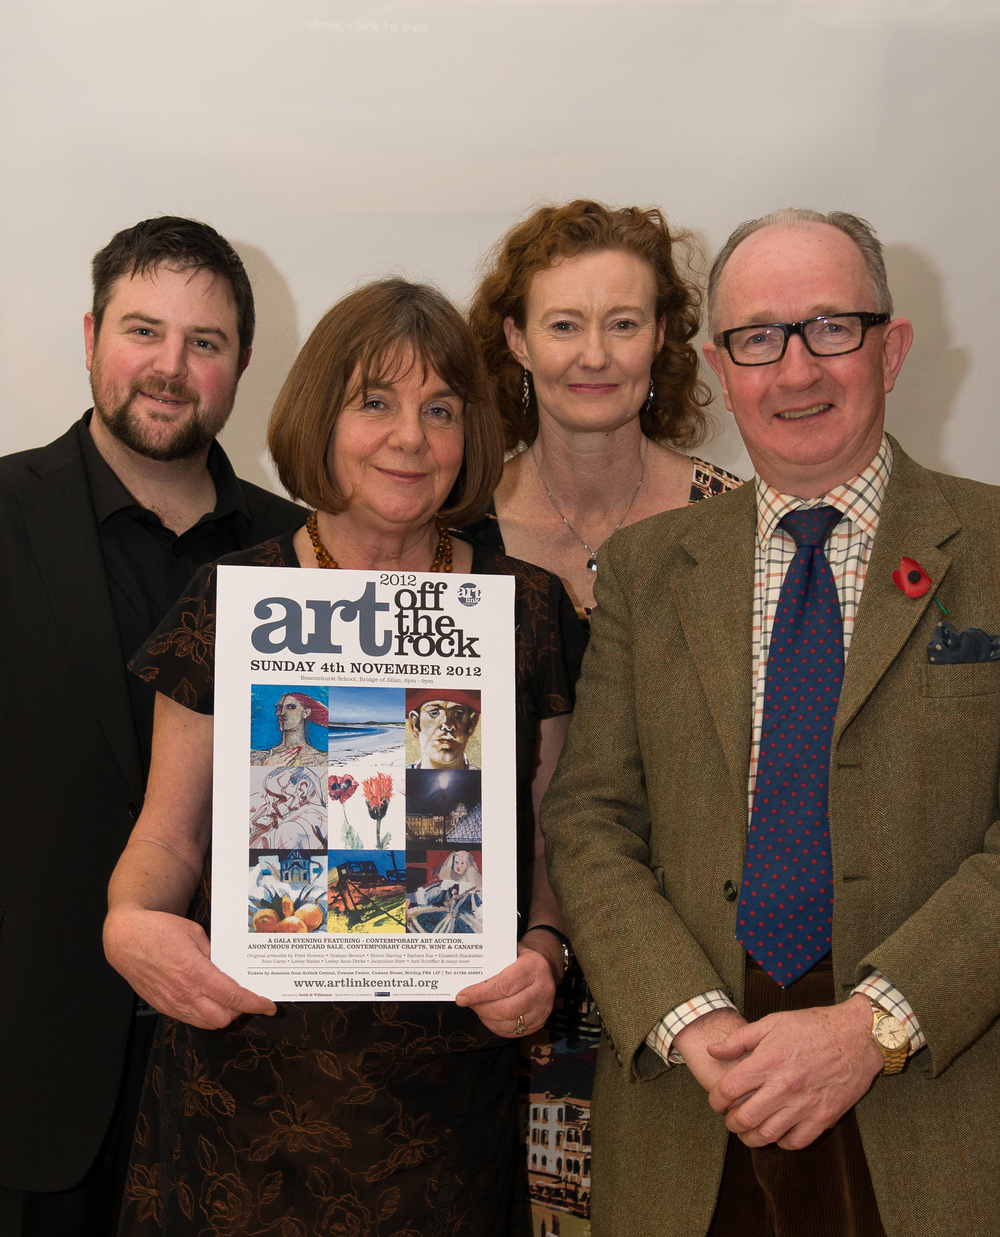 The Art off the Rock Team - Artlink Central Director Kevin Harrison, Patron Julia Donaldson, Development Officer Fiona Taylor and United Actions auctioneer David Leggat.jpg